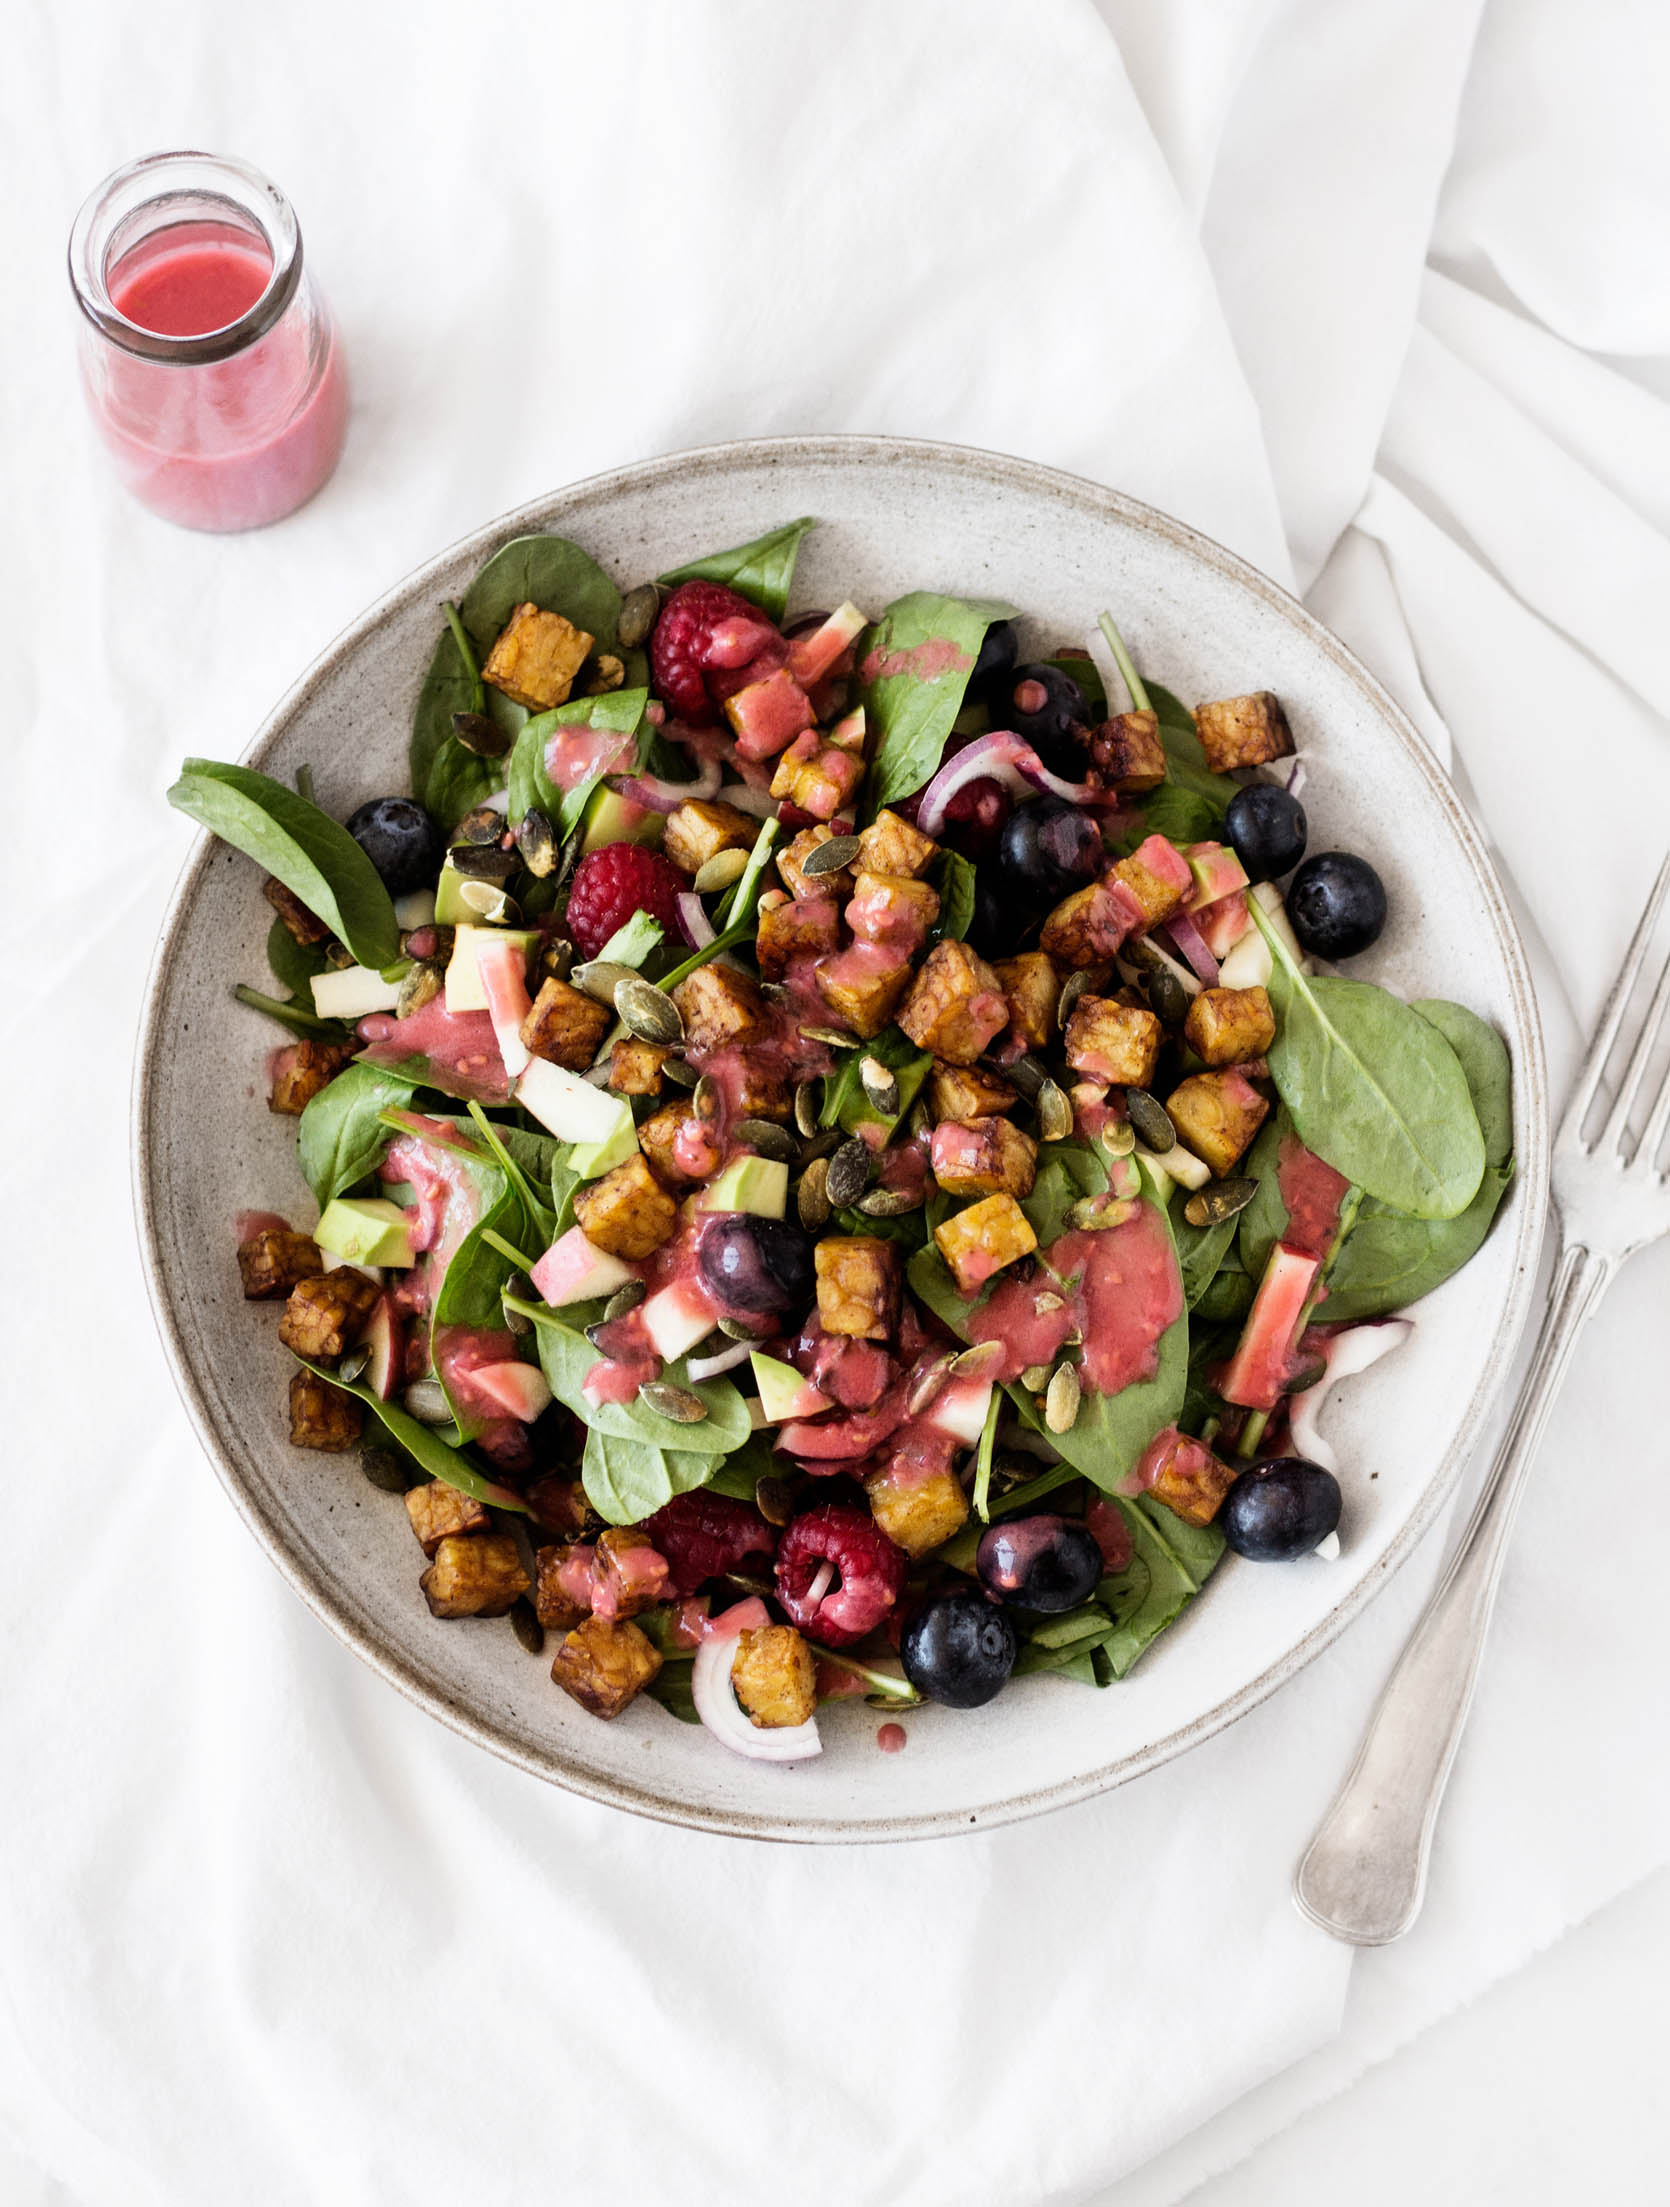 Berry, Spinach, & Seared Tempeh Salad with Raspberry Vinaigrette | The Full Helping